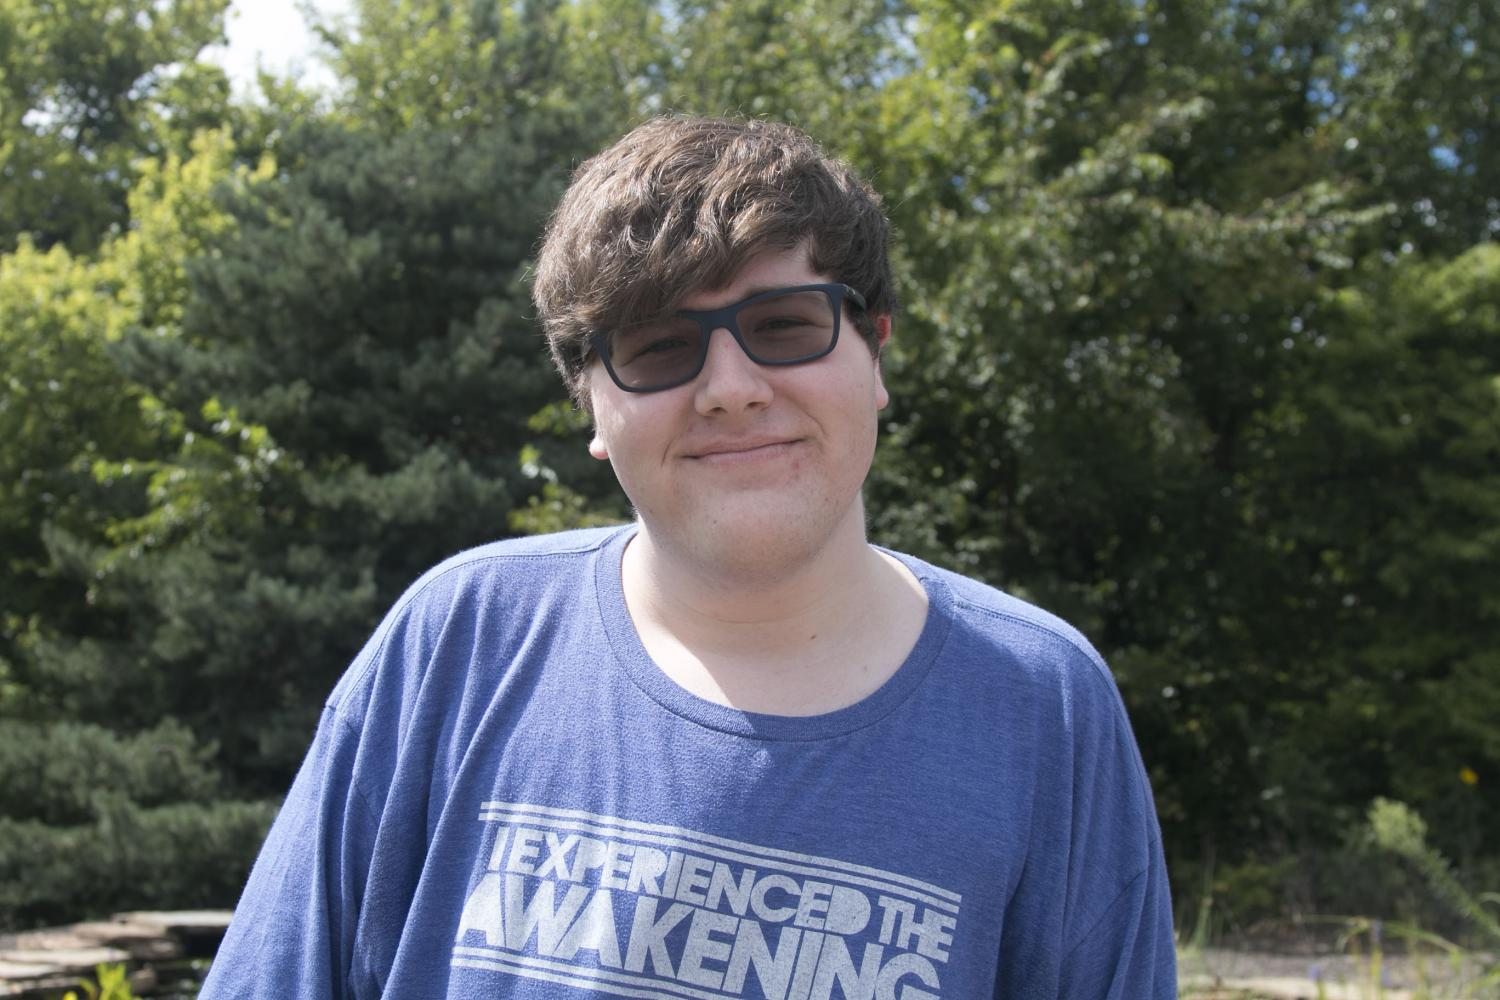 Micah Faulds, Editor-in-Chief